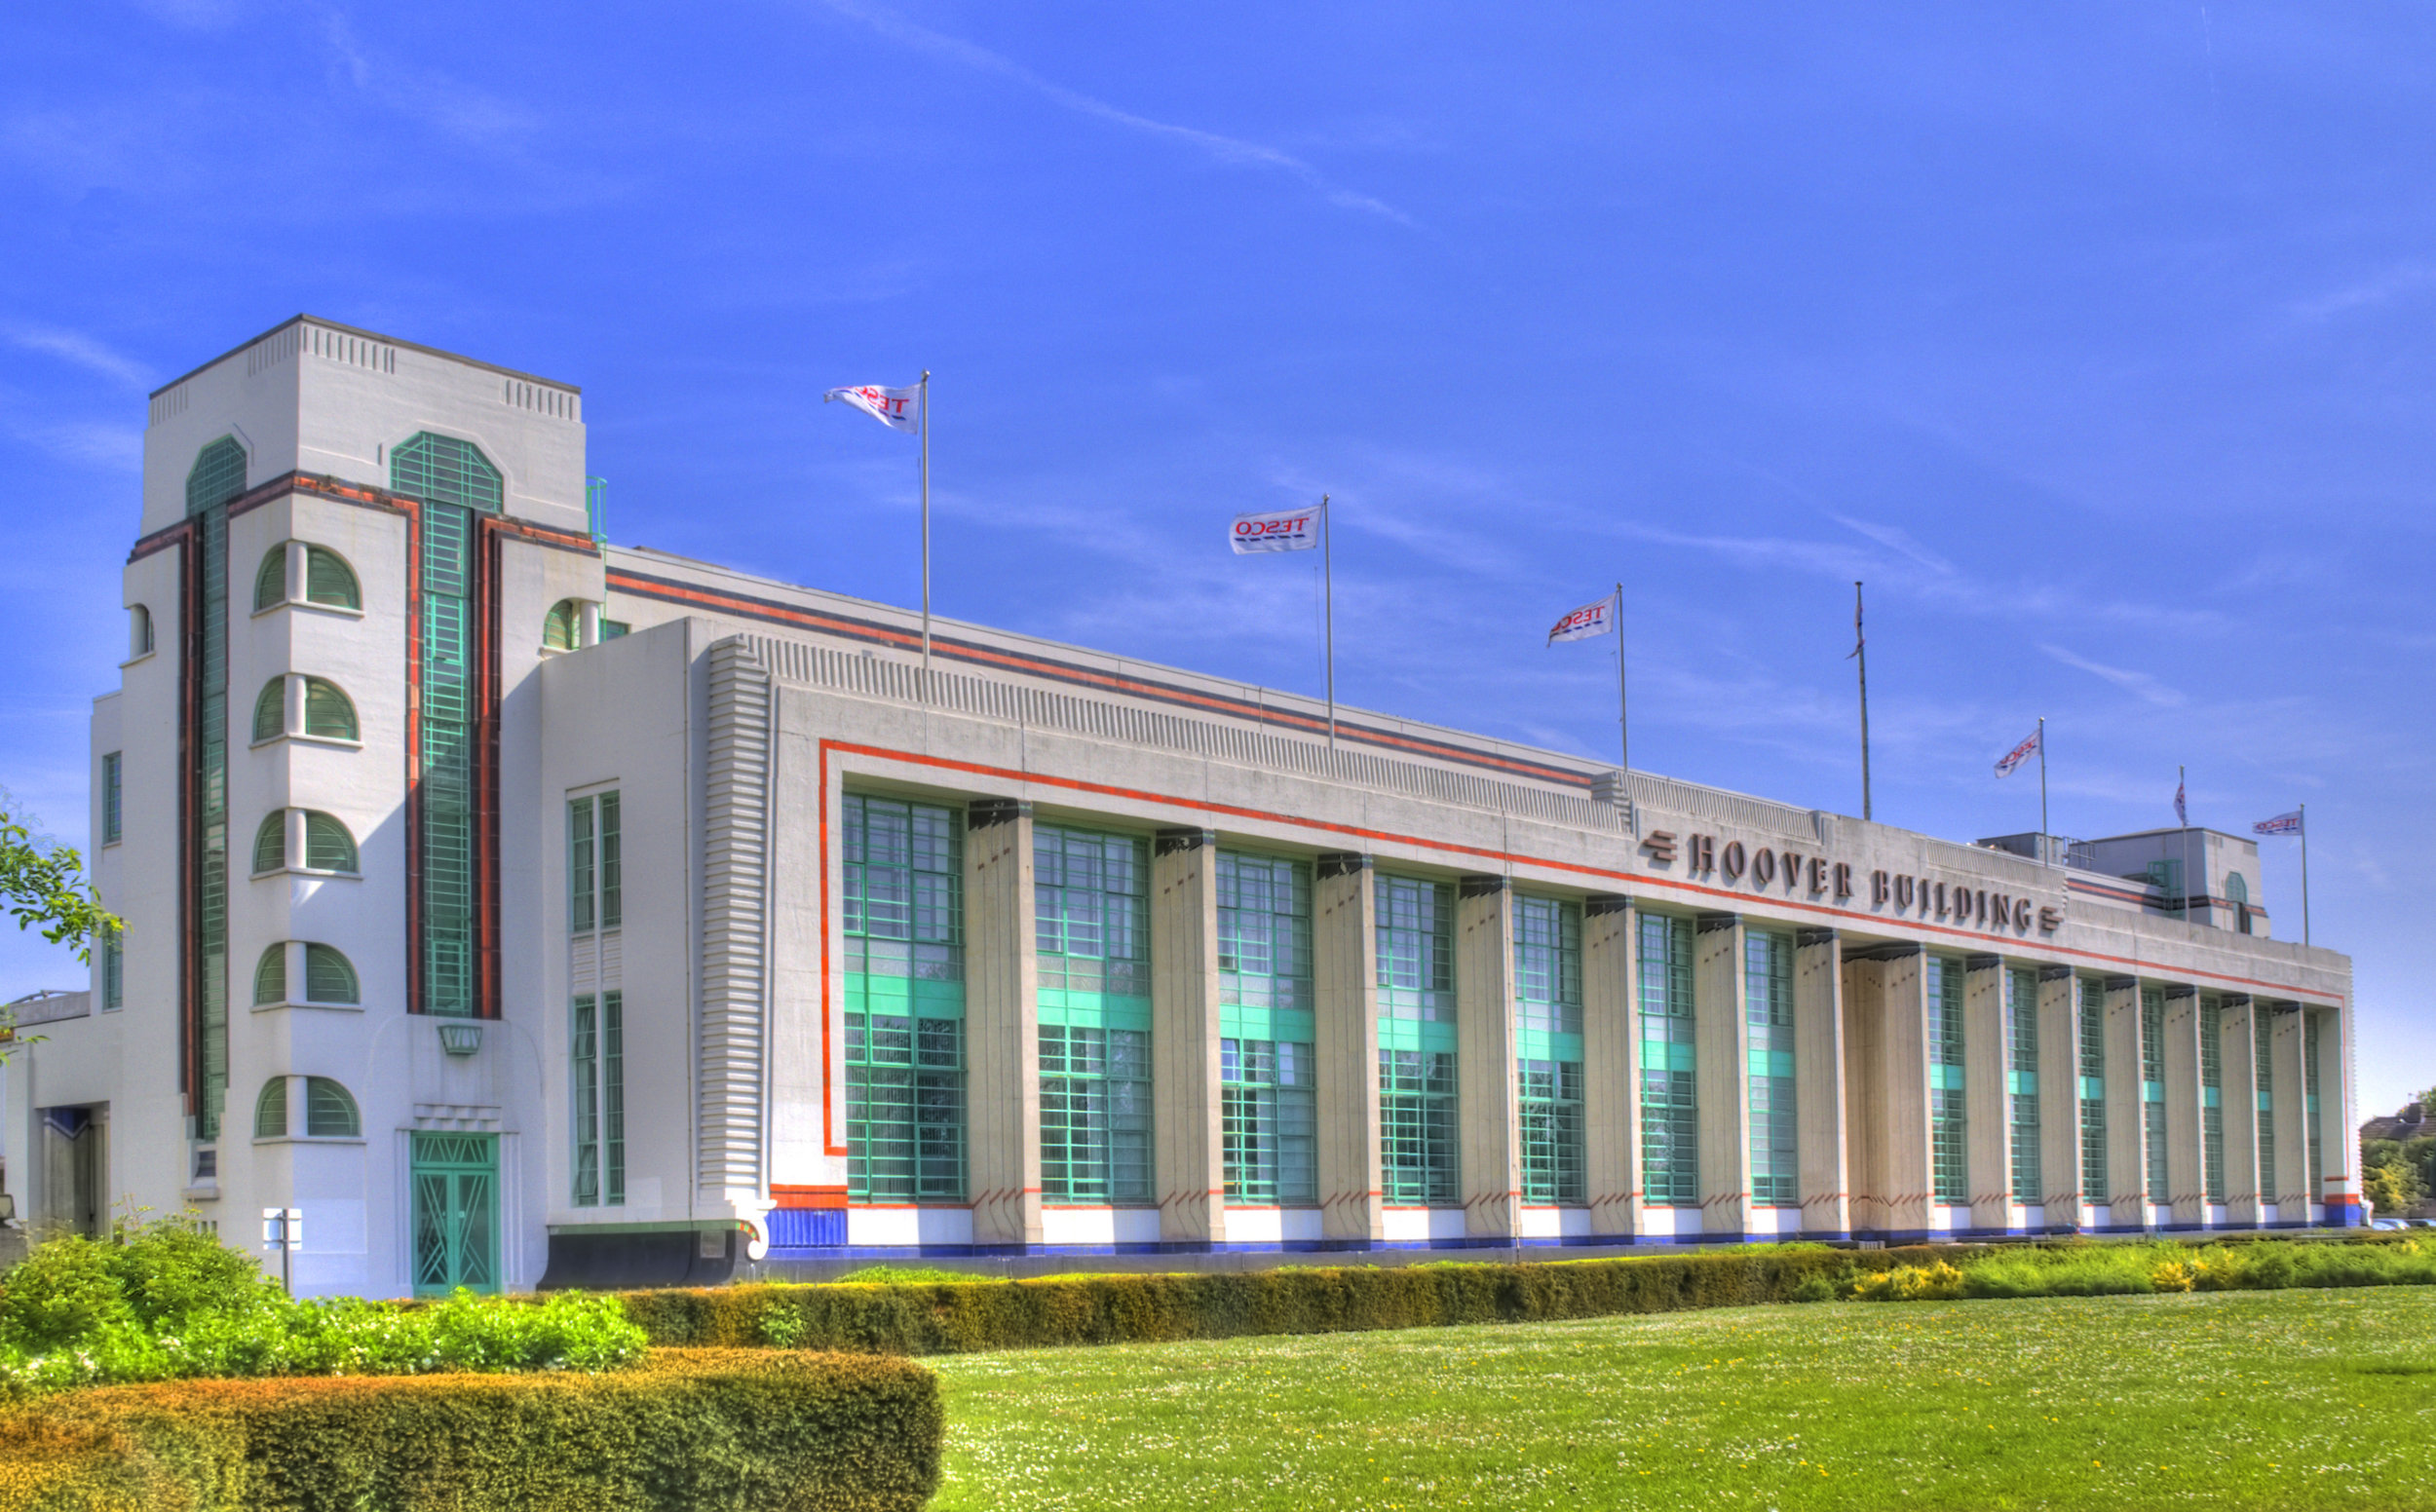 The Hoover Building, London 1932